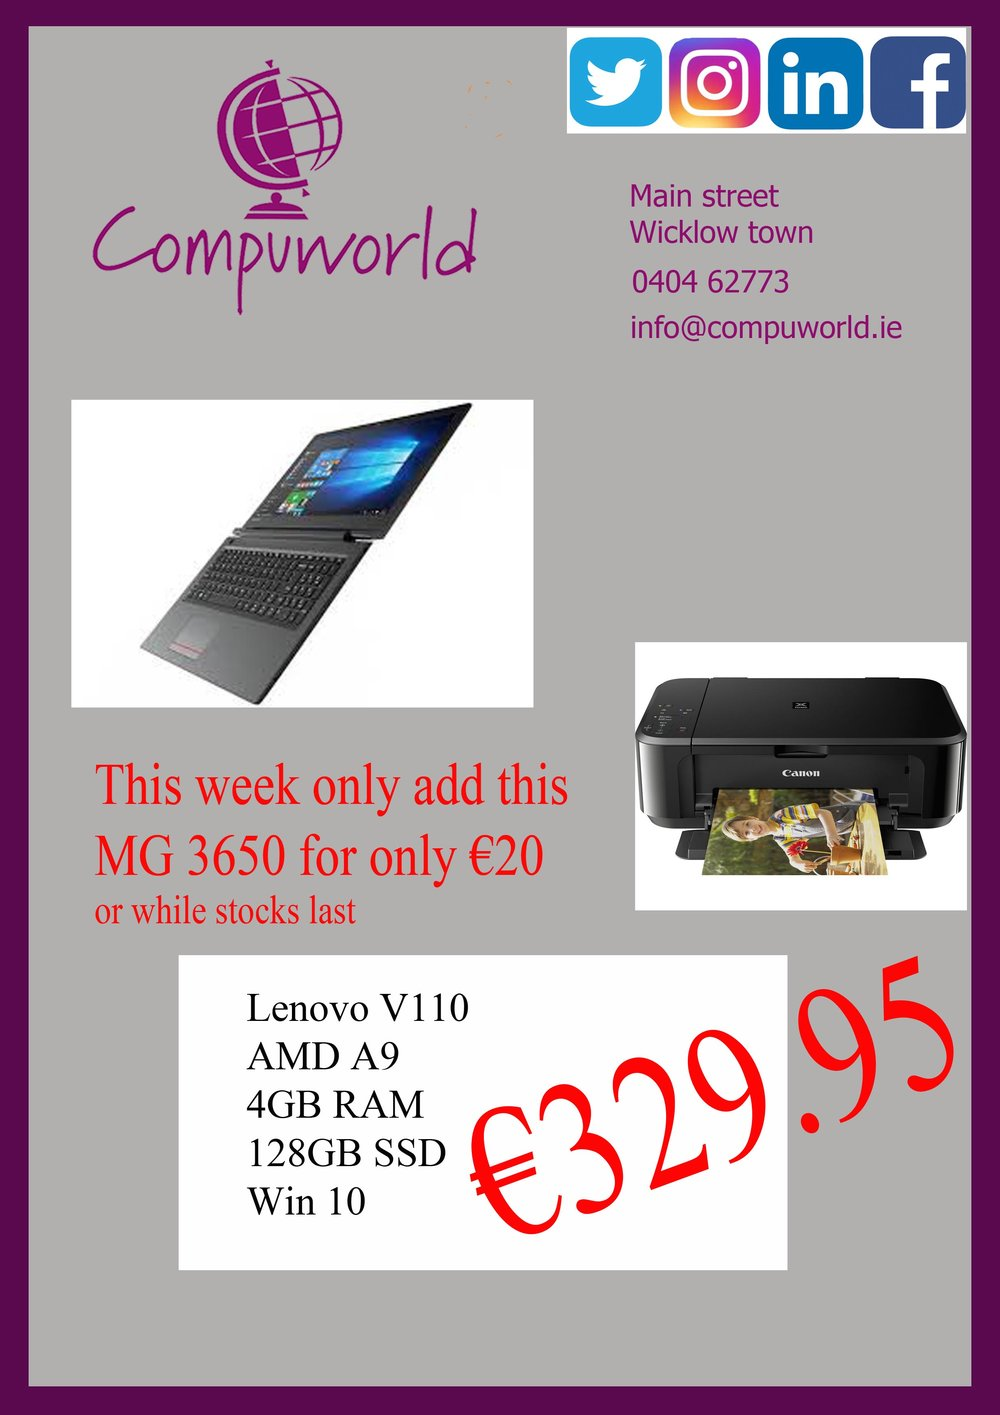 lenovo v110 printer Offer.jpg